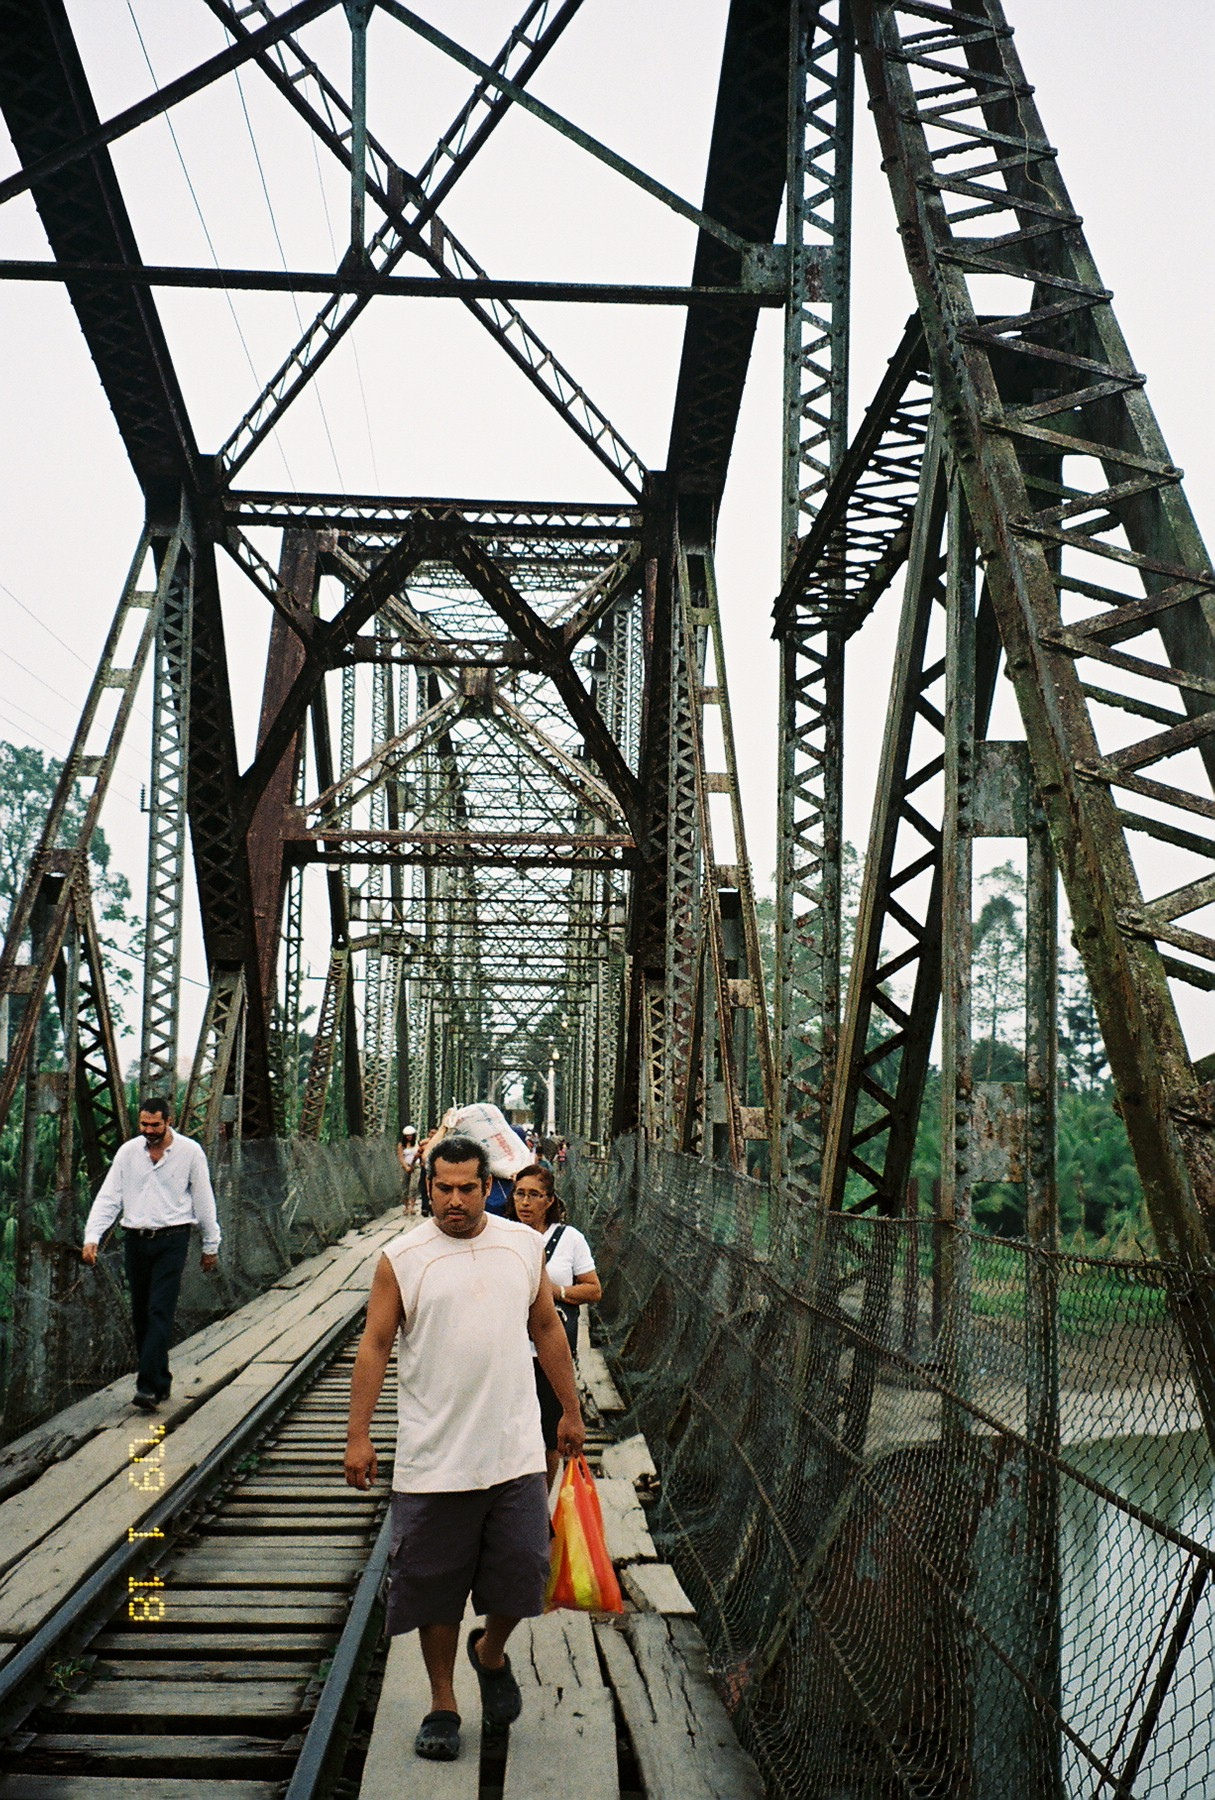 People crossing the bridge from Sixaola, Costa Rica into Guabito, Panama